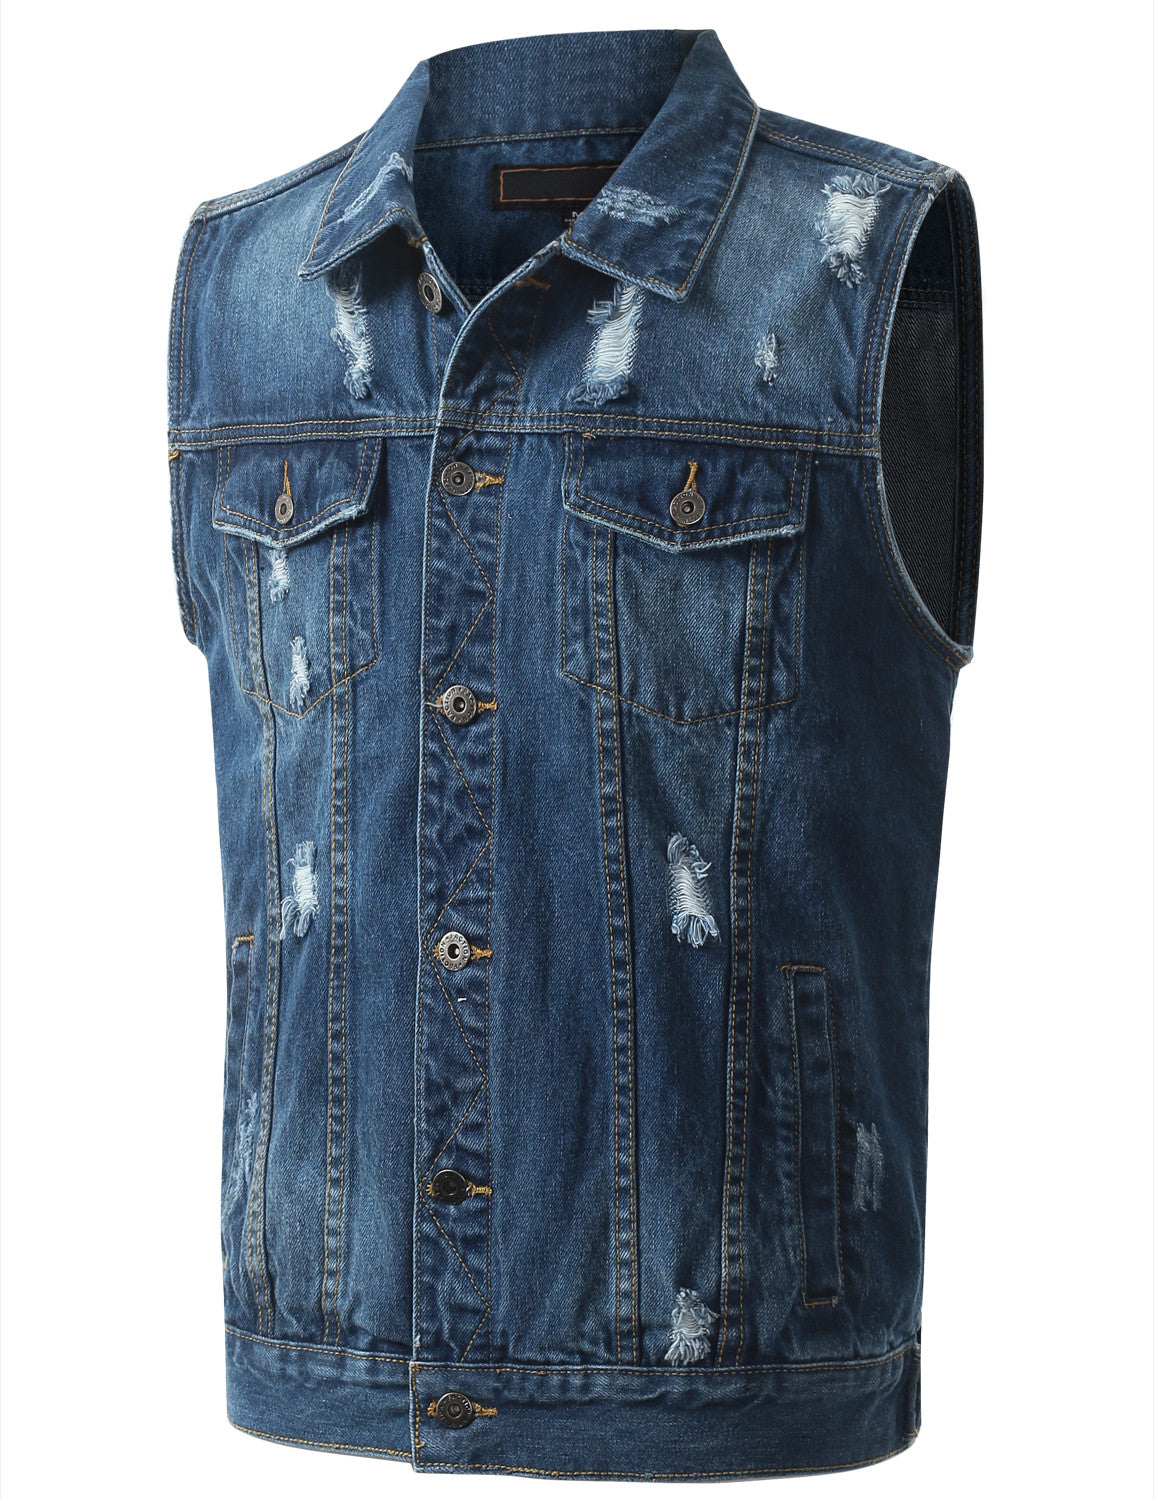 LTBLUE Distressed Medium Wash Denim Vest